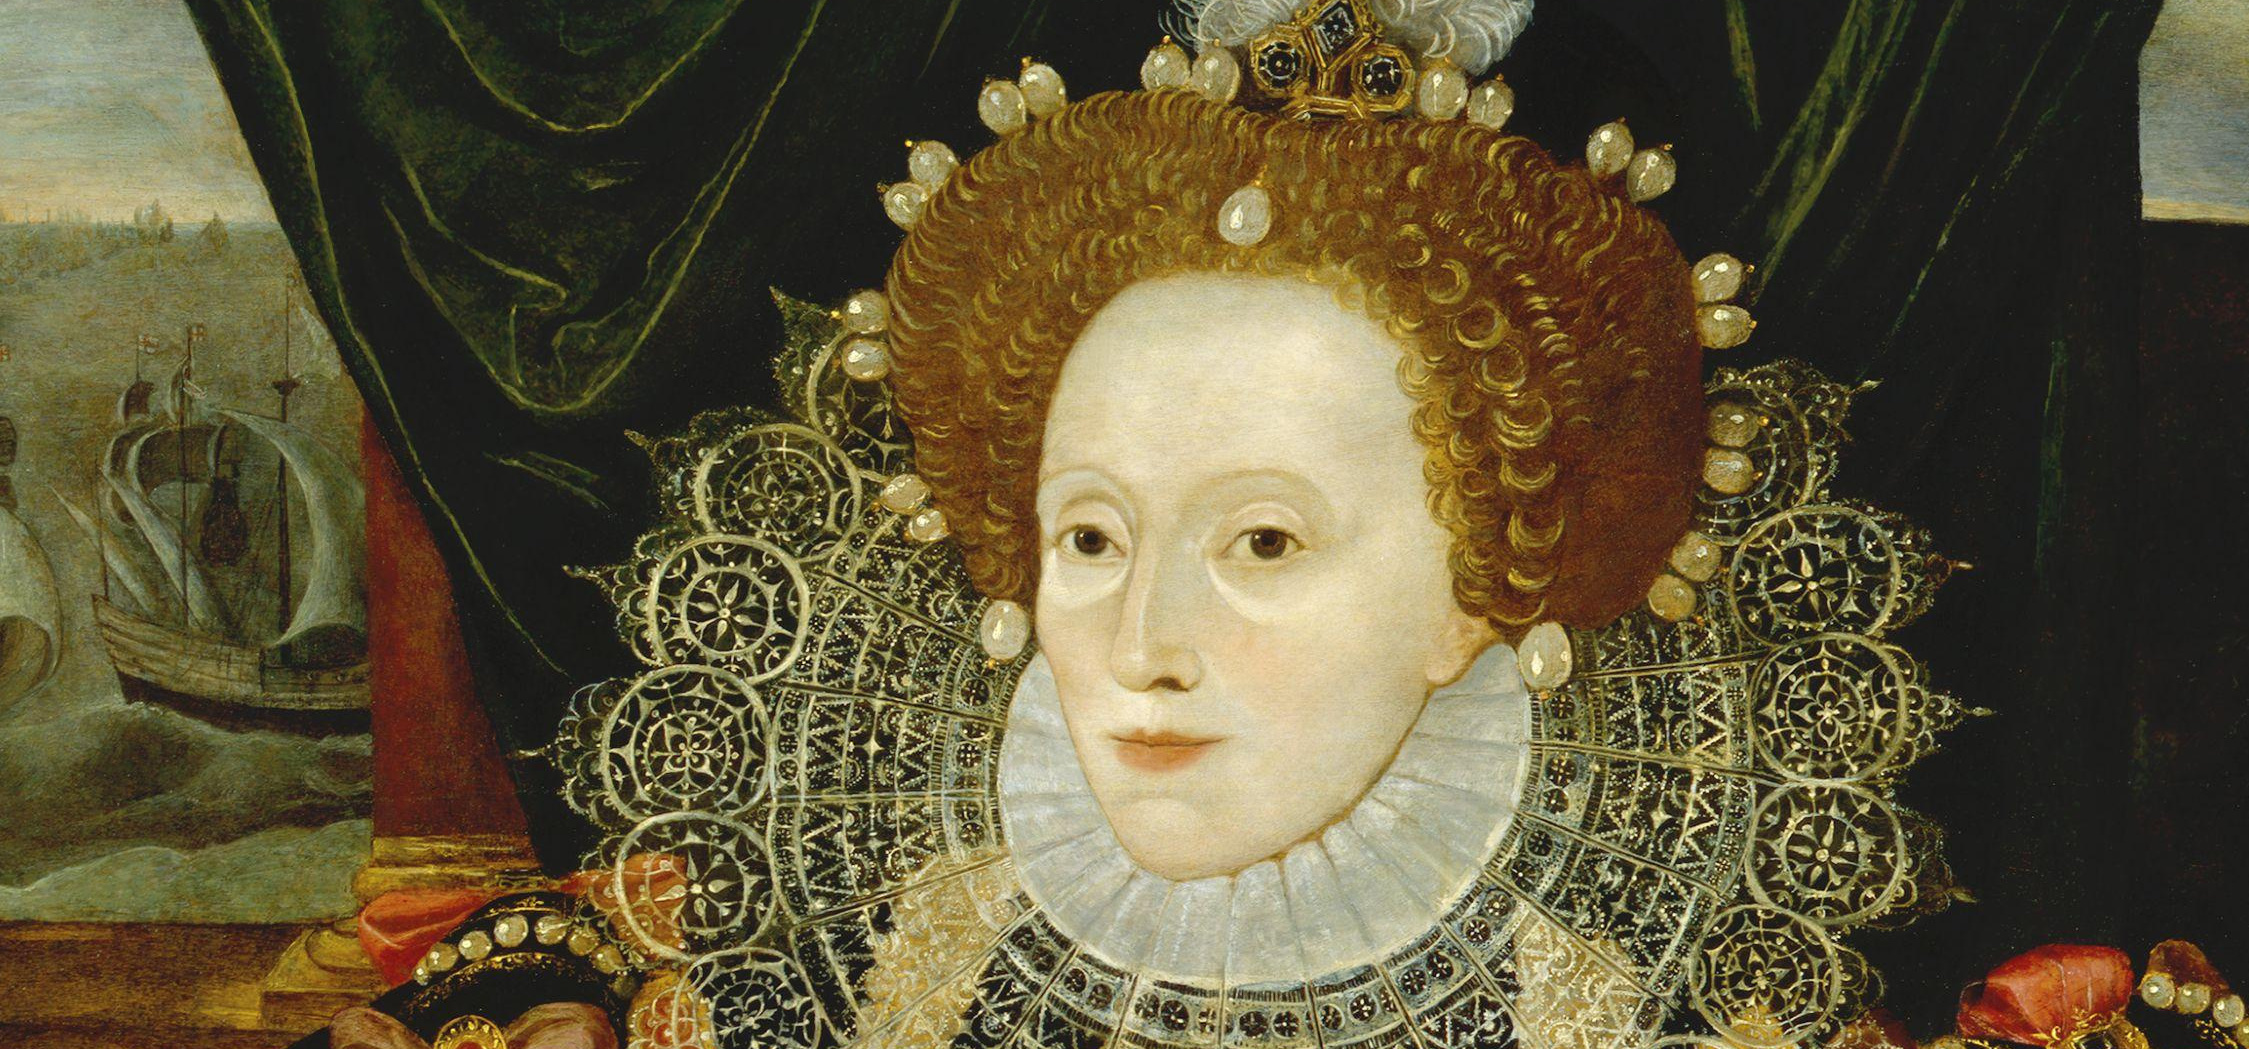 a history of jewishness in the elizabethan period Posted in renaissance 1450-1650, tagged elizabethan fashion, europe, fashion, history, renaissance, tudor clothing on january 16, 2012| 4 comments » in about 1450, when the printing press was invented, a new era was ushered in, an era of quickly circulating information that allowed for new inventions, new styles, and new discoveries: the.